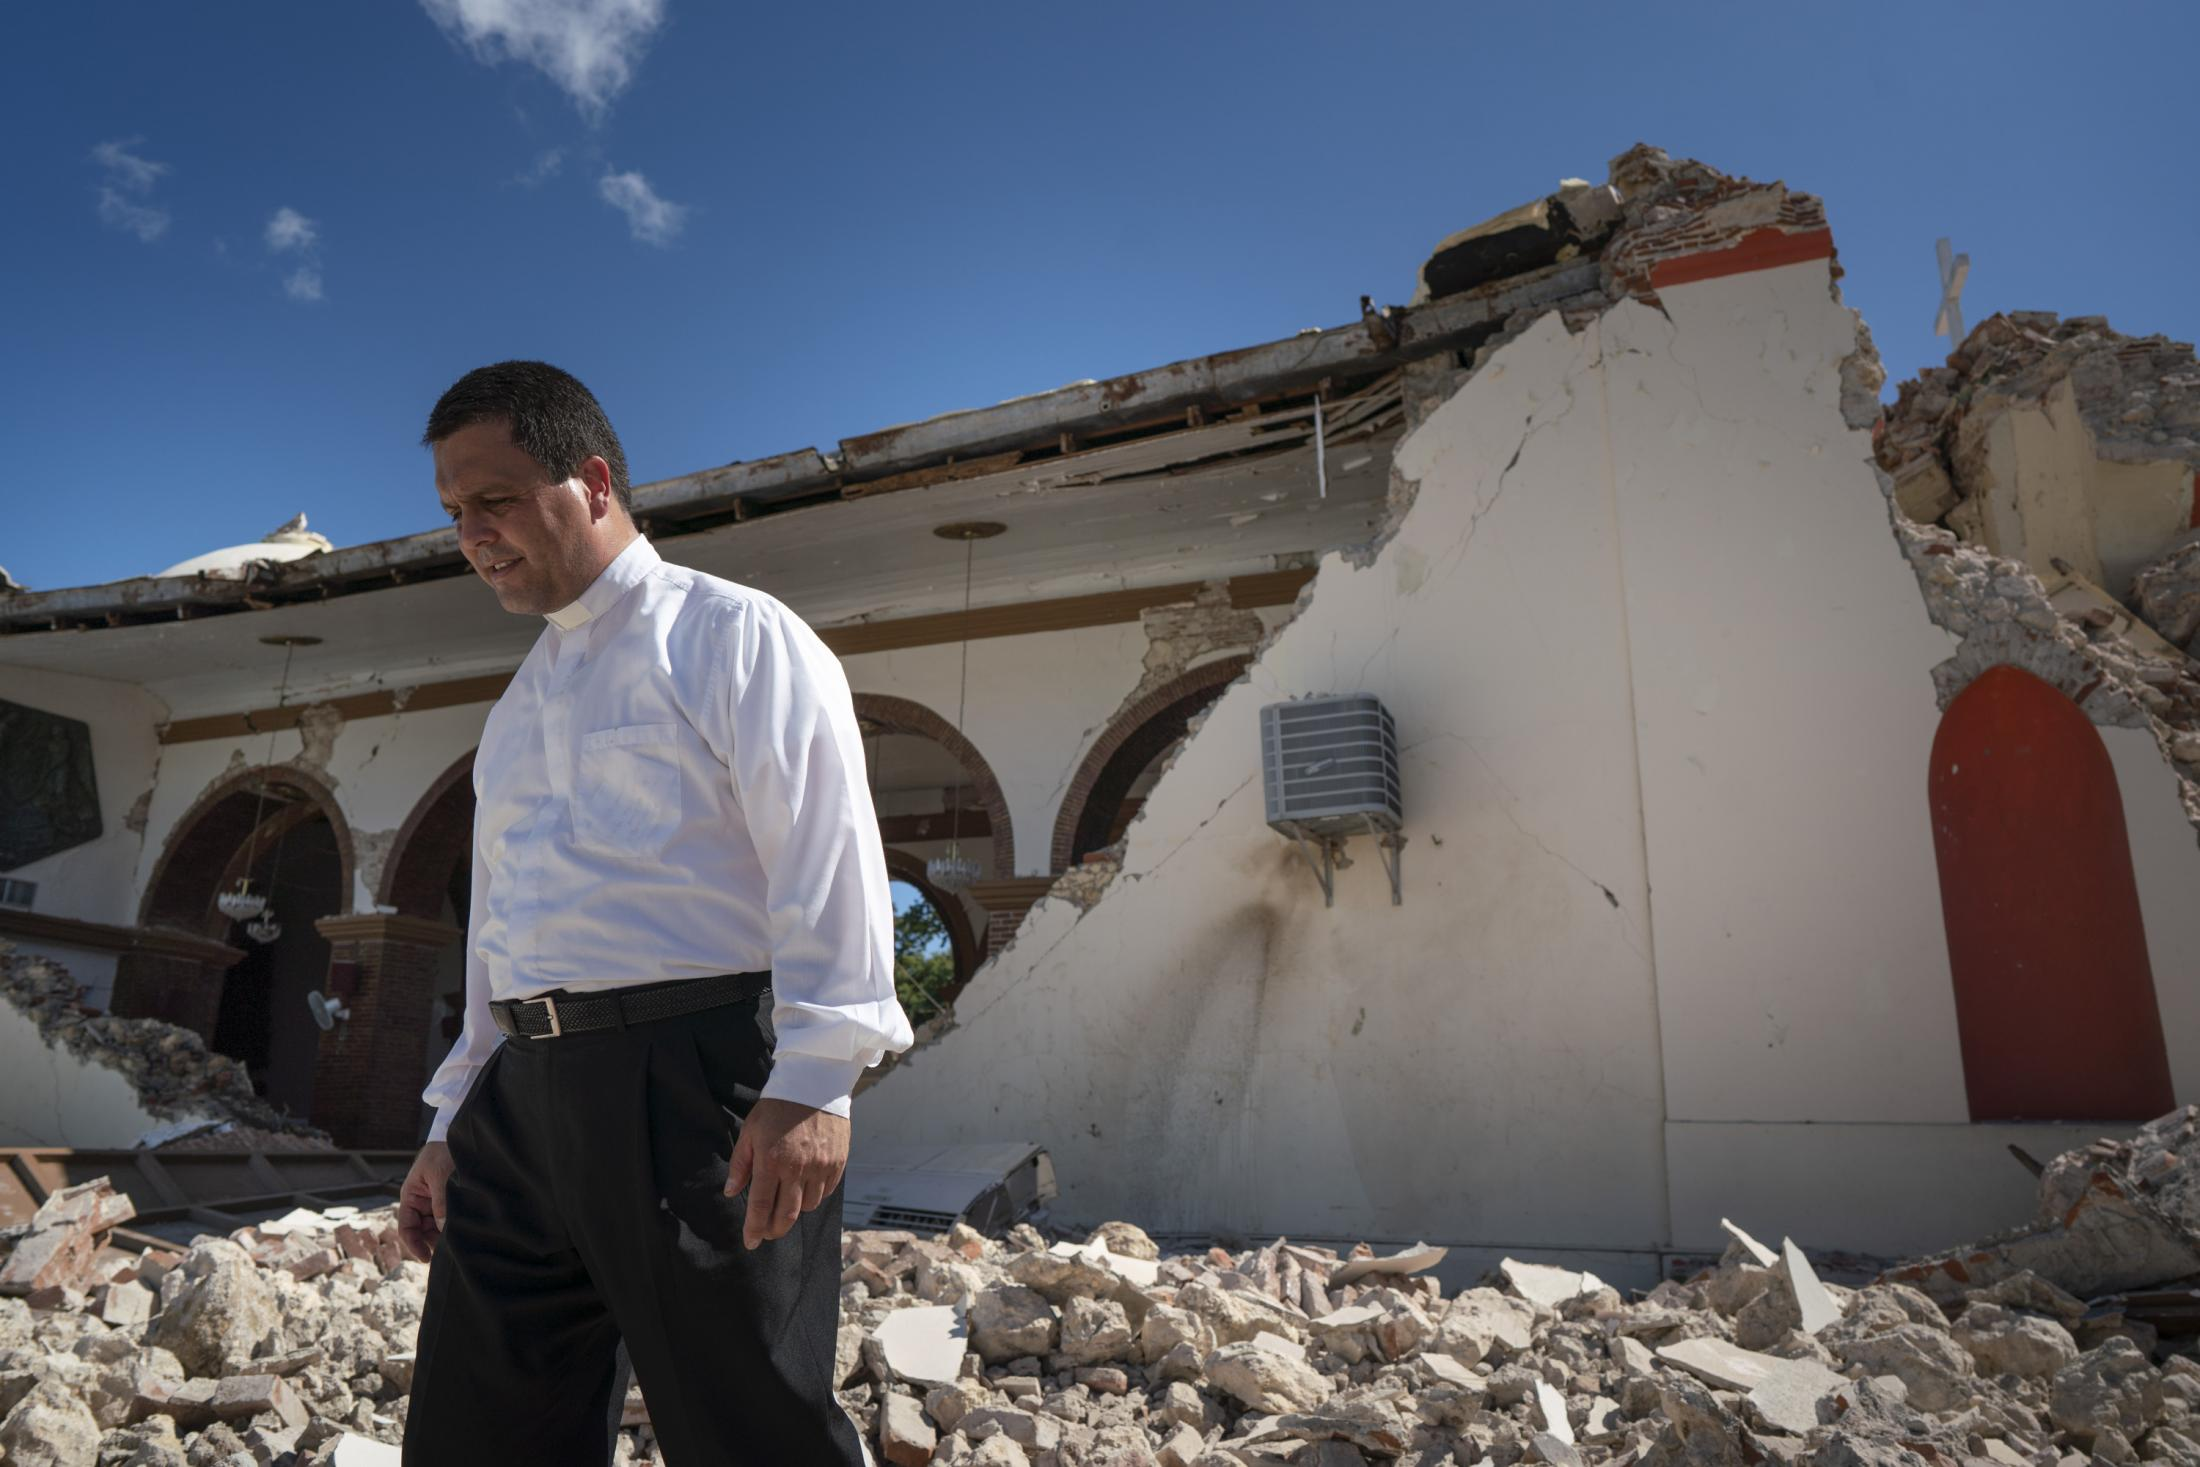 GUAYANILLA, PUERTO RICO - JANUARY 7: The father inspect damage to the church Parroquia Inmaculada Concepción after a 6.4 earthquake hit just south of the island January 7, 2020 on Guayanilla, PR. This morning's earthquake was preceded by a series of smaller quakes in the south of the island with epicentric in Guánica. (Photo by Eric Rojas/Getty Images)